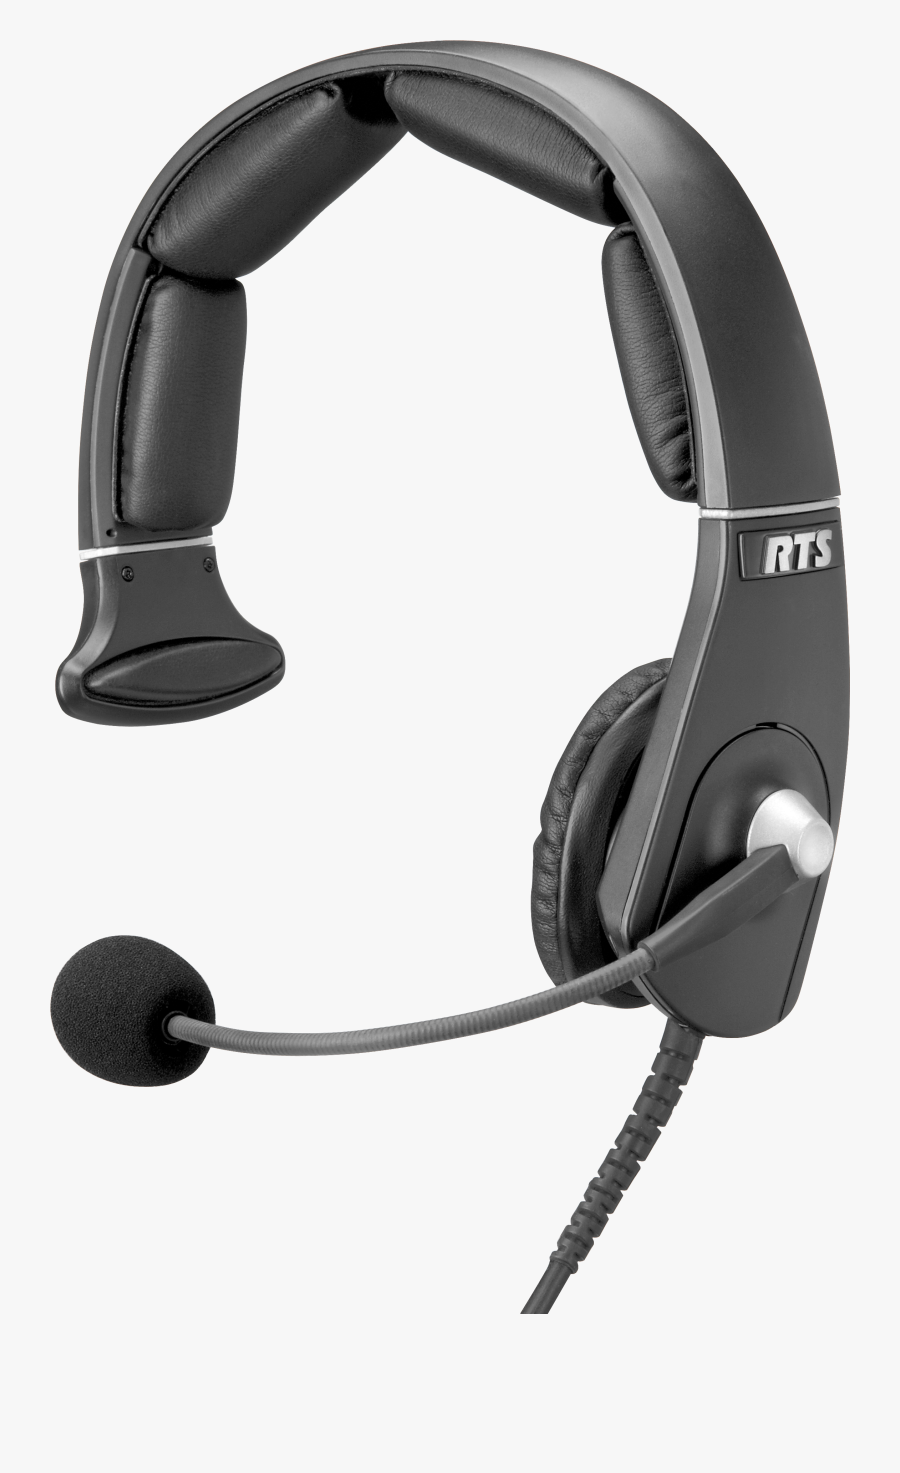 Headphones Png Images Free Download - Headphones With Mic Png, Transparent Clipart